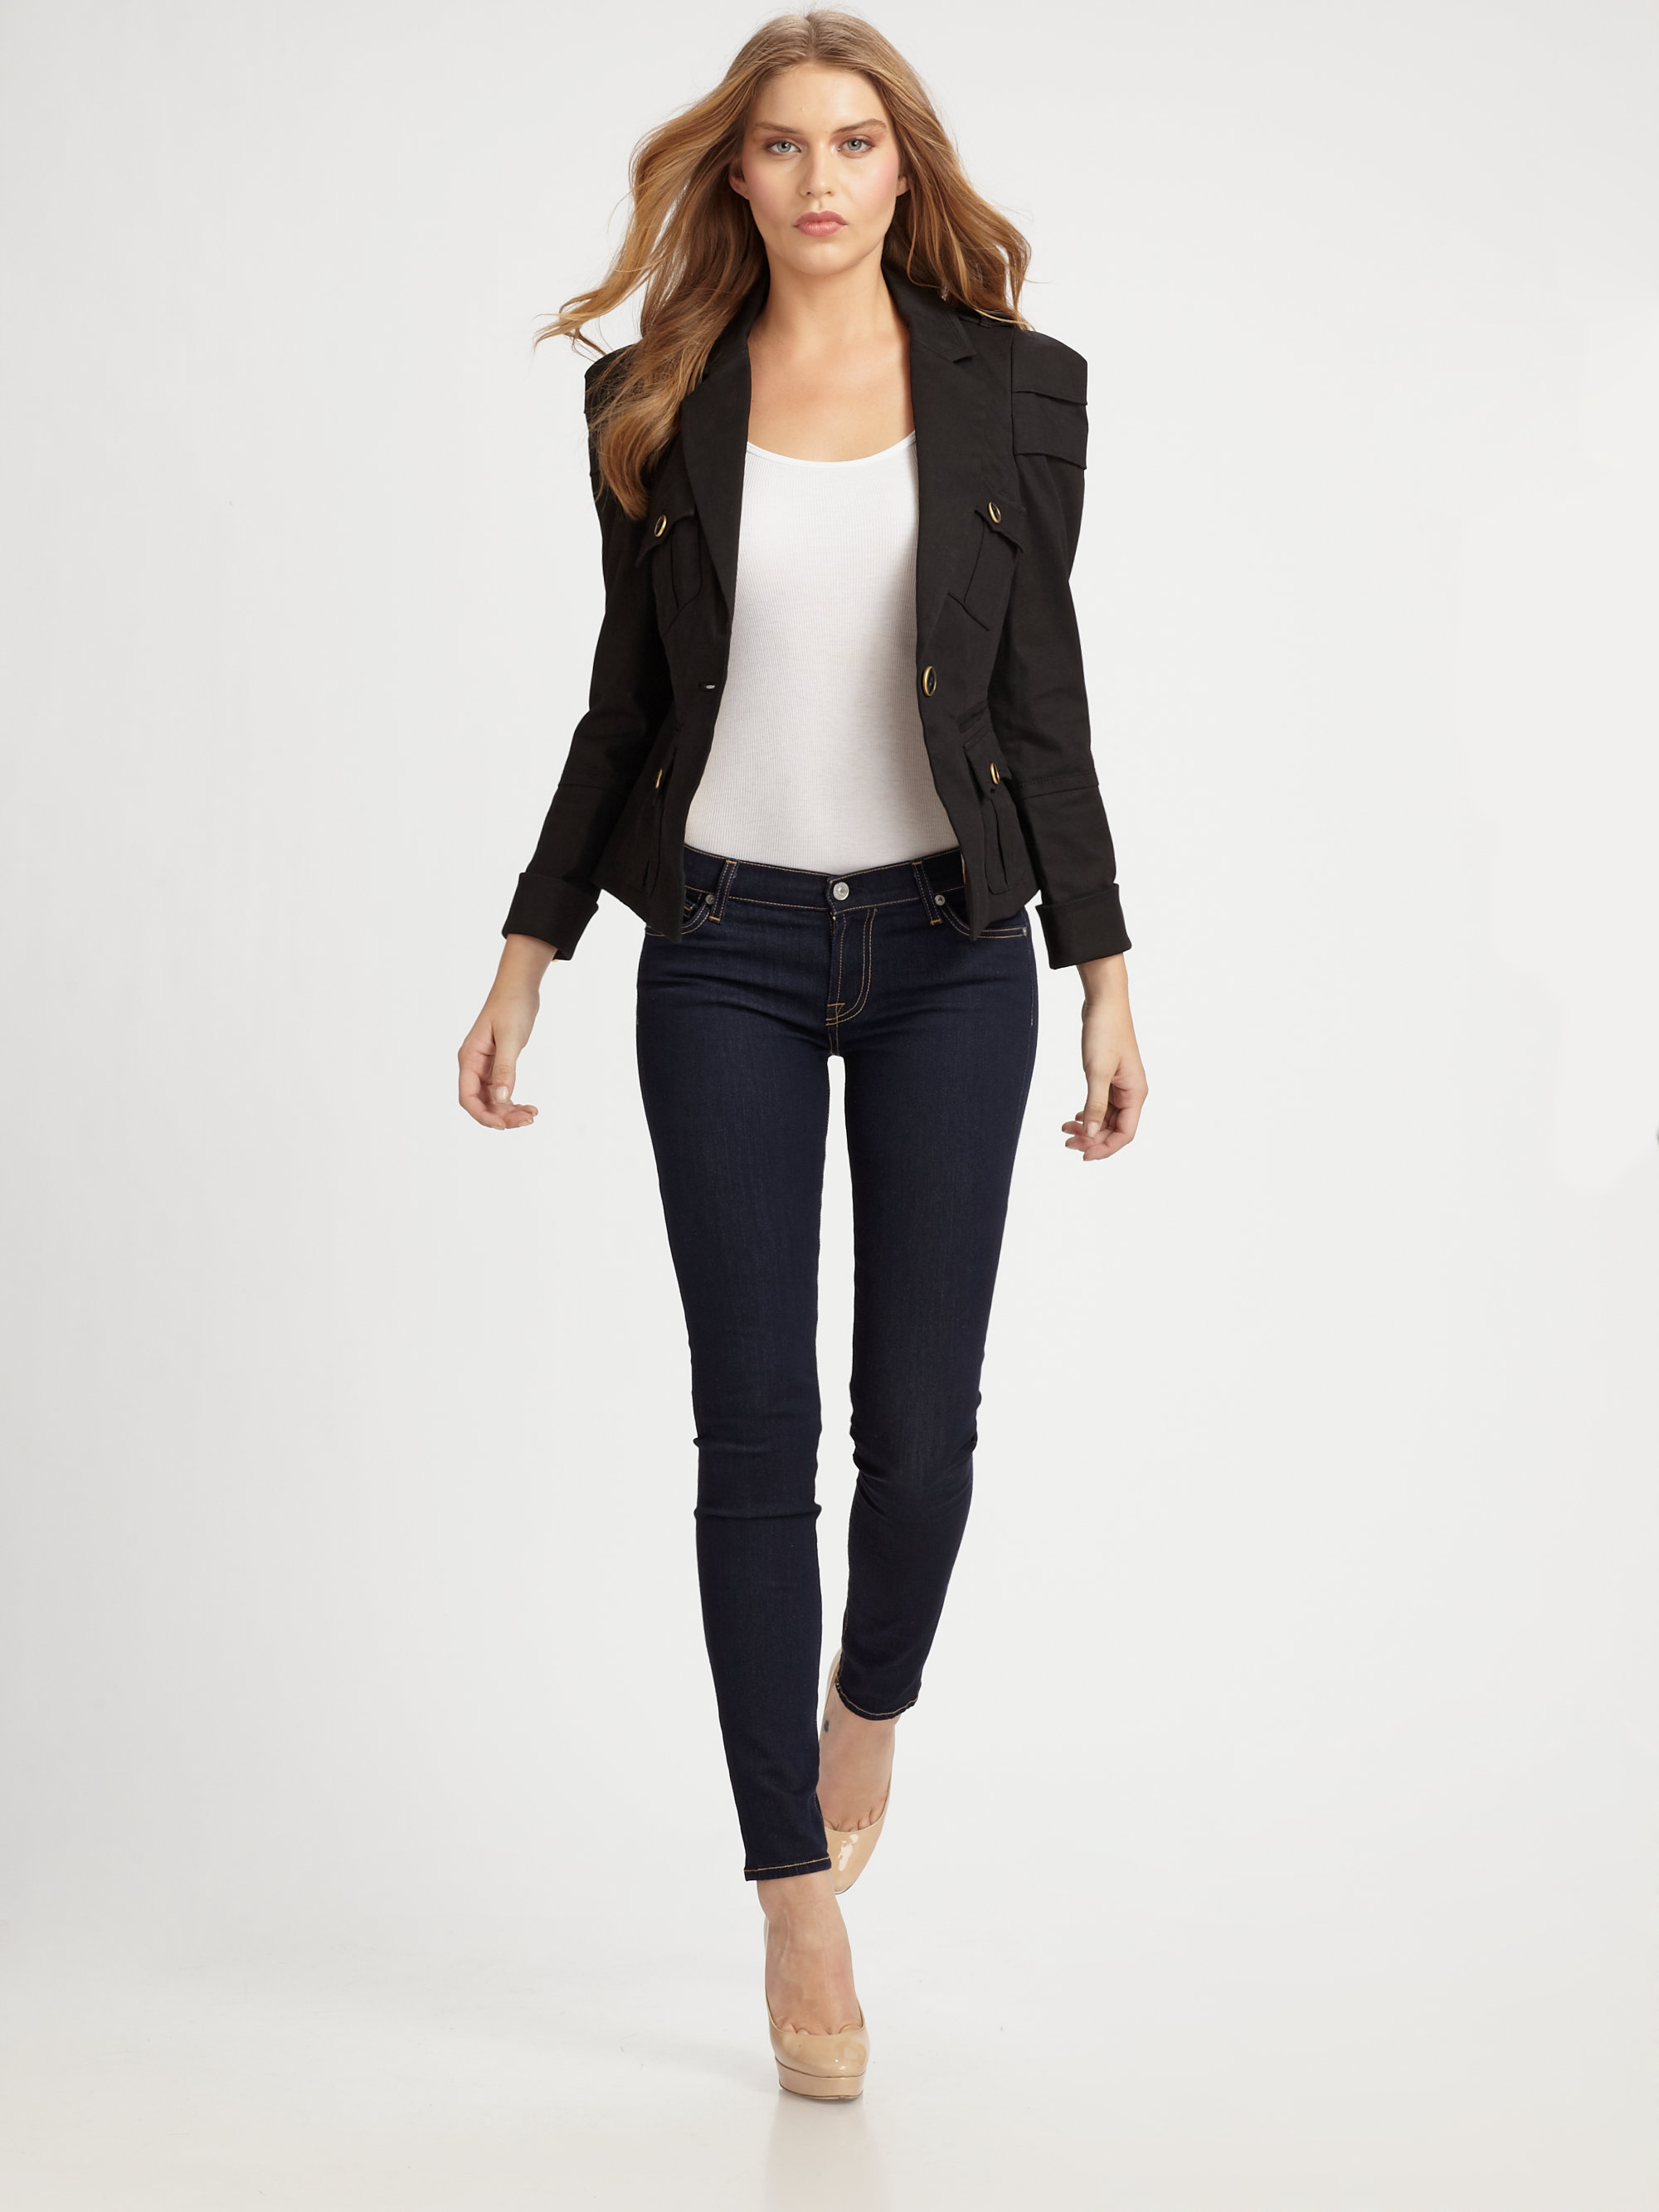 Shop women's blazers at Lands' End to stock up on women's casual blazers for spring. We have a fantastic selection of black blazers that can go from the office to date night seamlessly, crisp white blazers and colorful blazers that provide great style to any outfit.